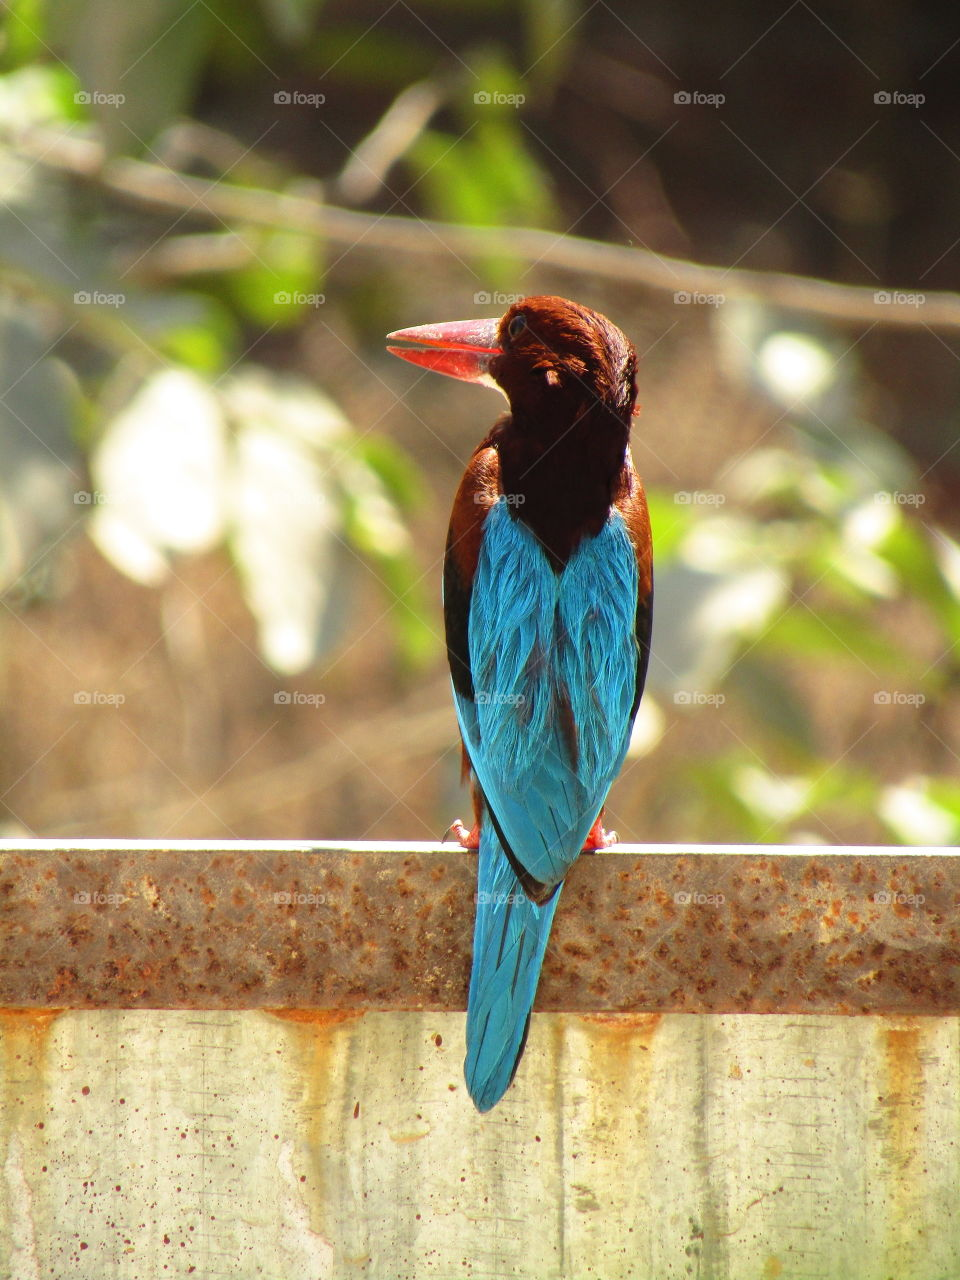 The white throated kingfisher (halcyon smyrnensis) also known as the white-breasted kingfisher.